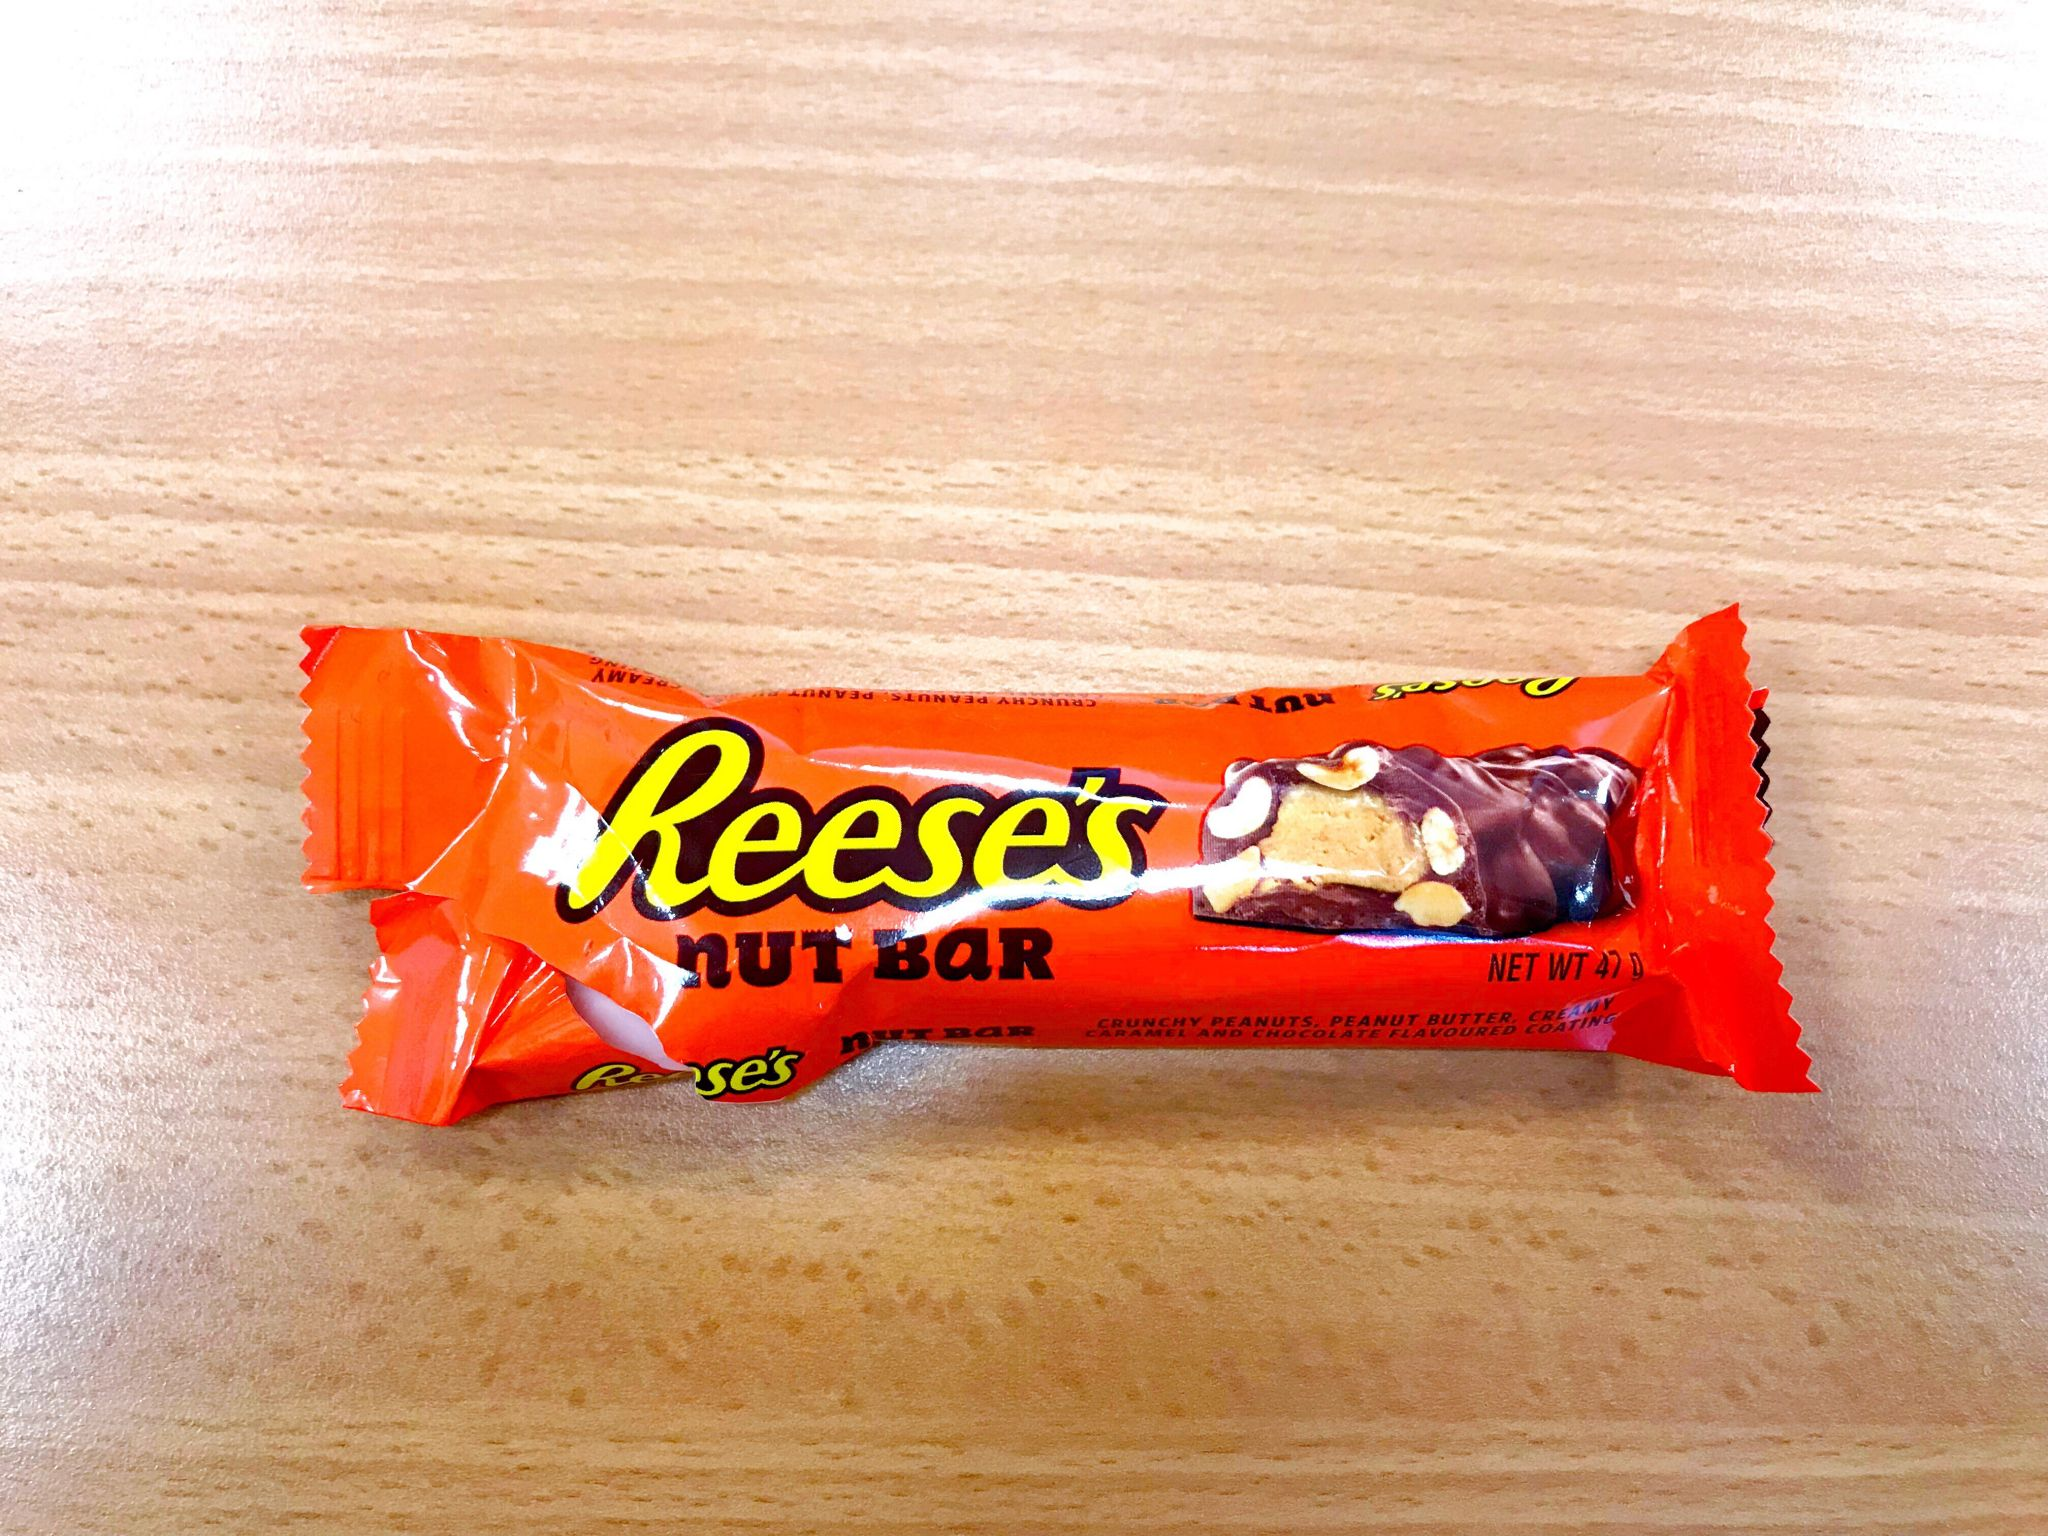 reese's nut bar